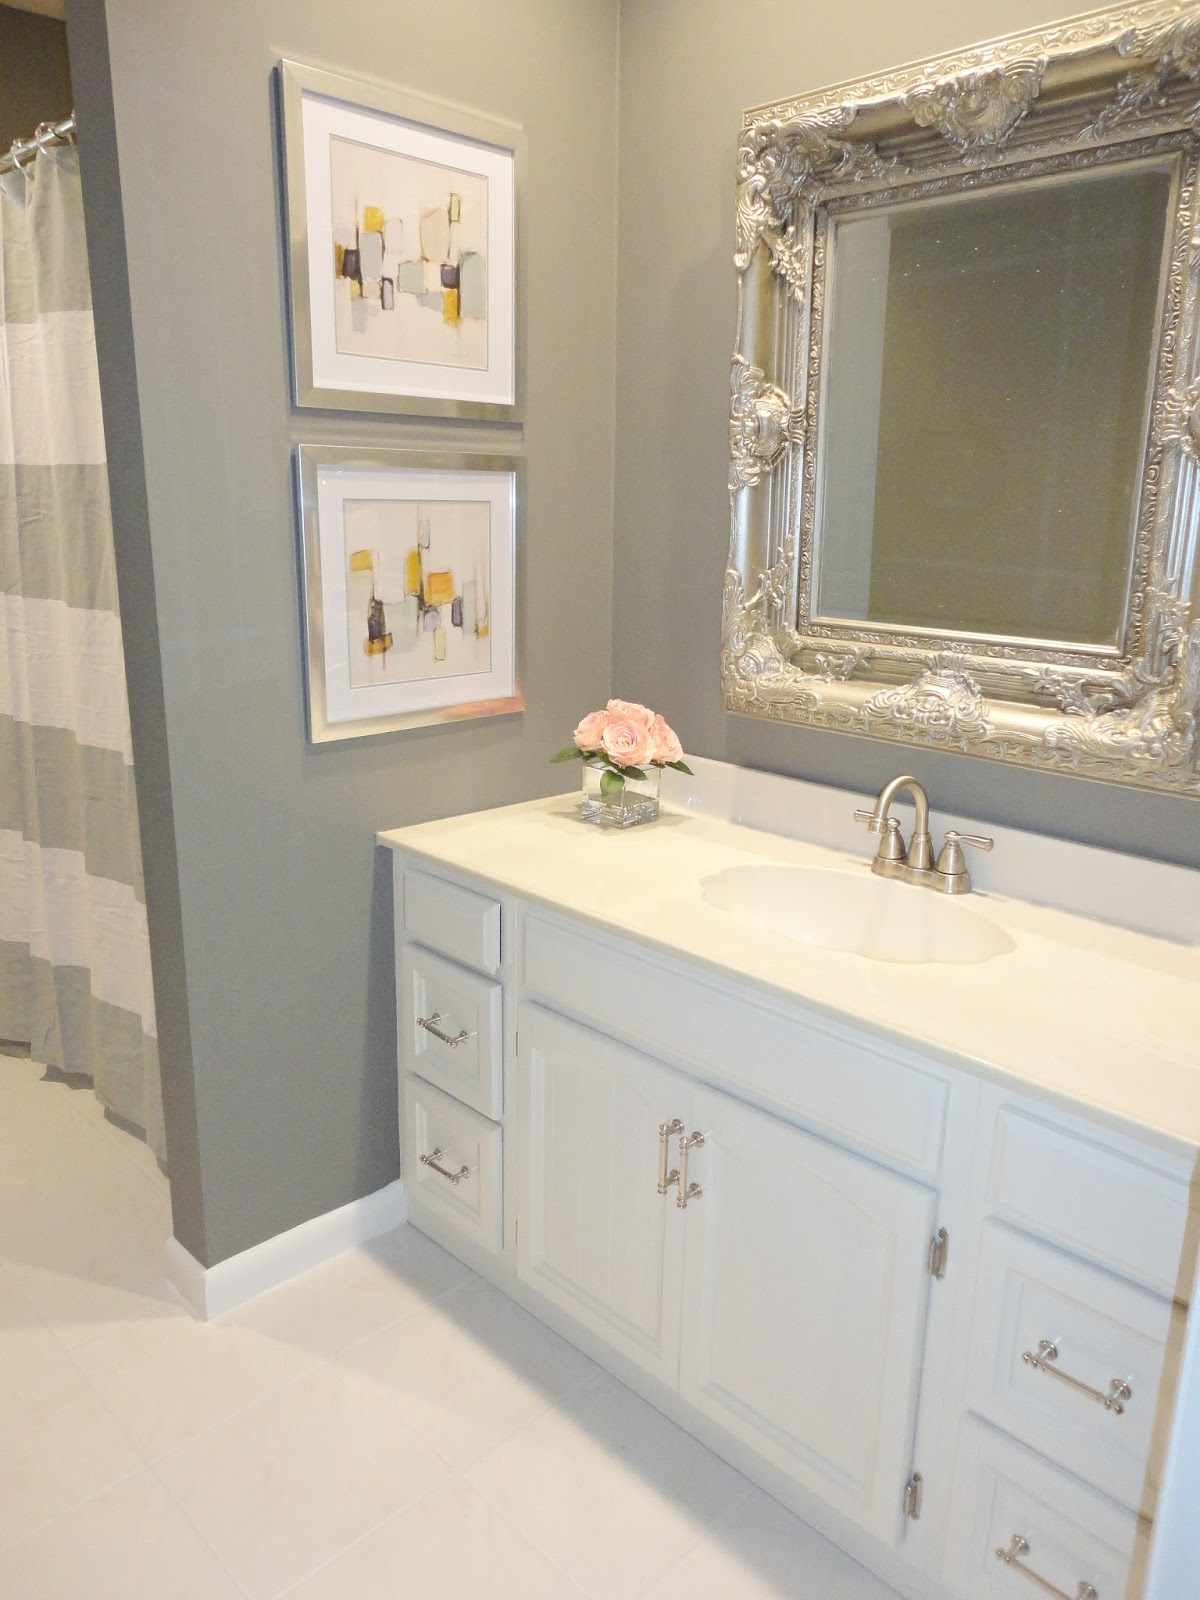 livelovediy diy bathroom remodel on a budget livelovediy diy bathroom remodel on a budget